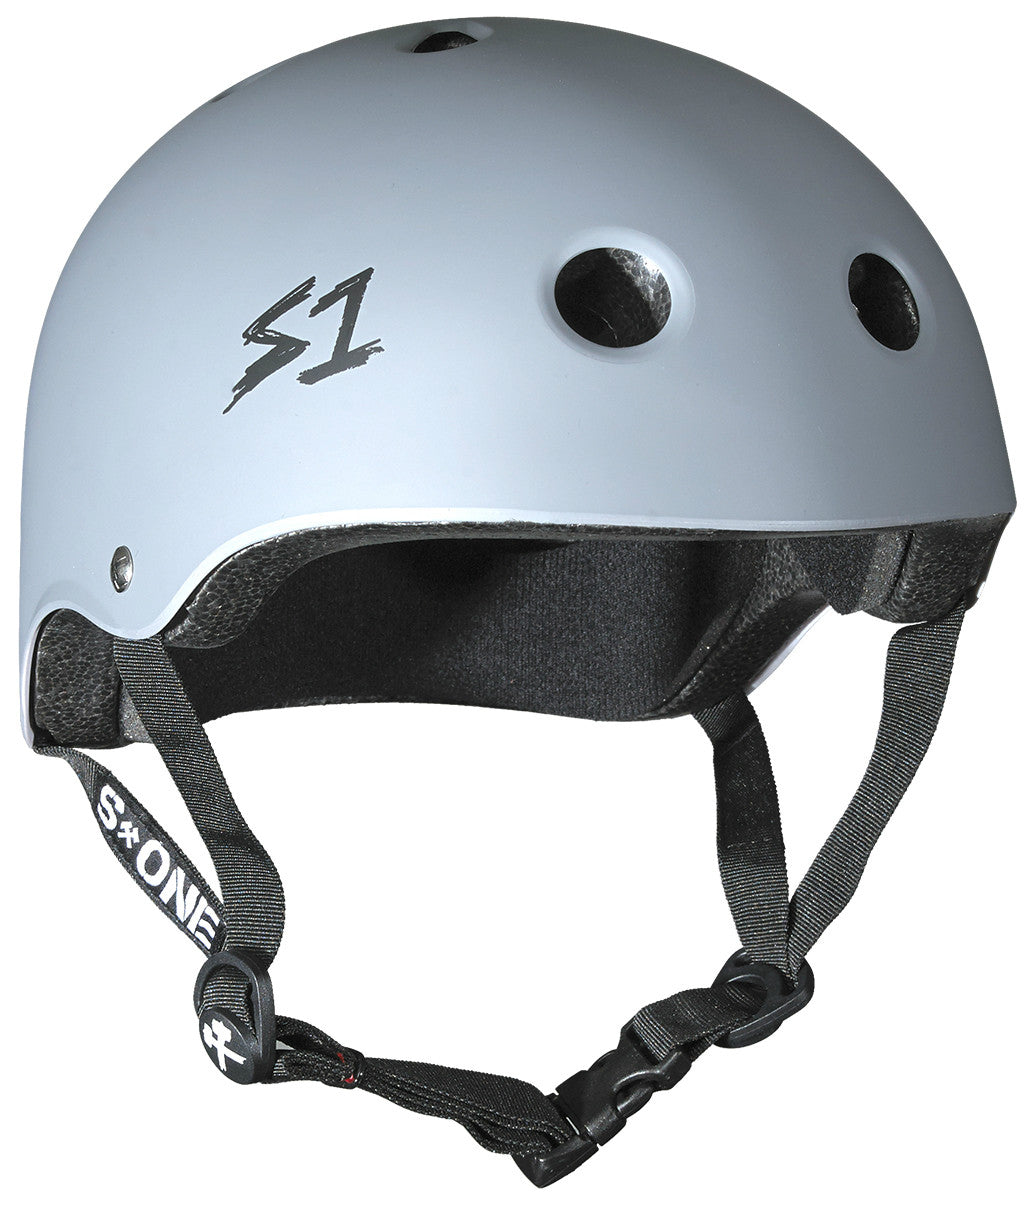 S1 Lifer Helmet - Grey Matte